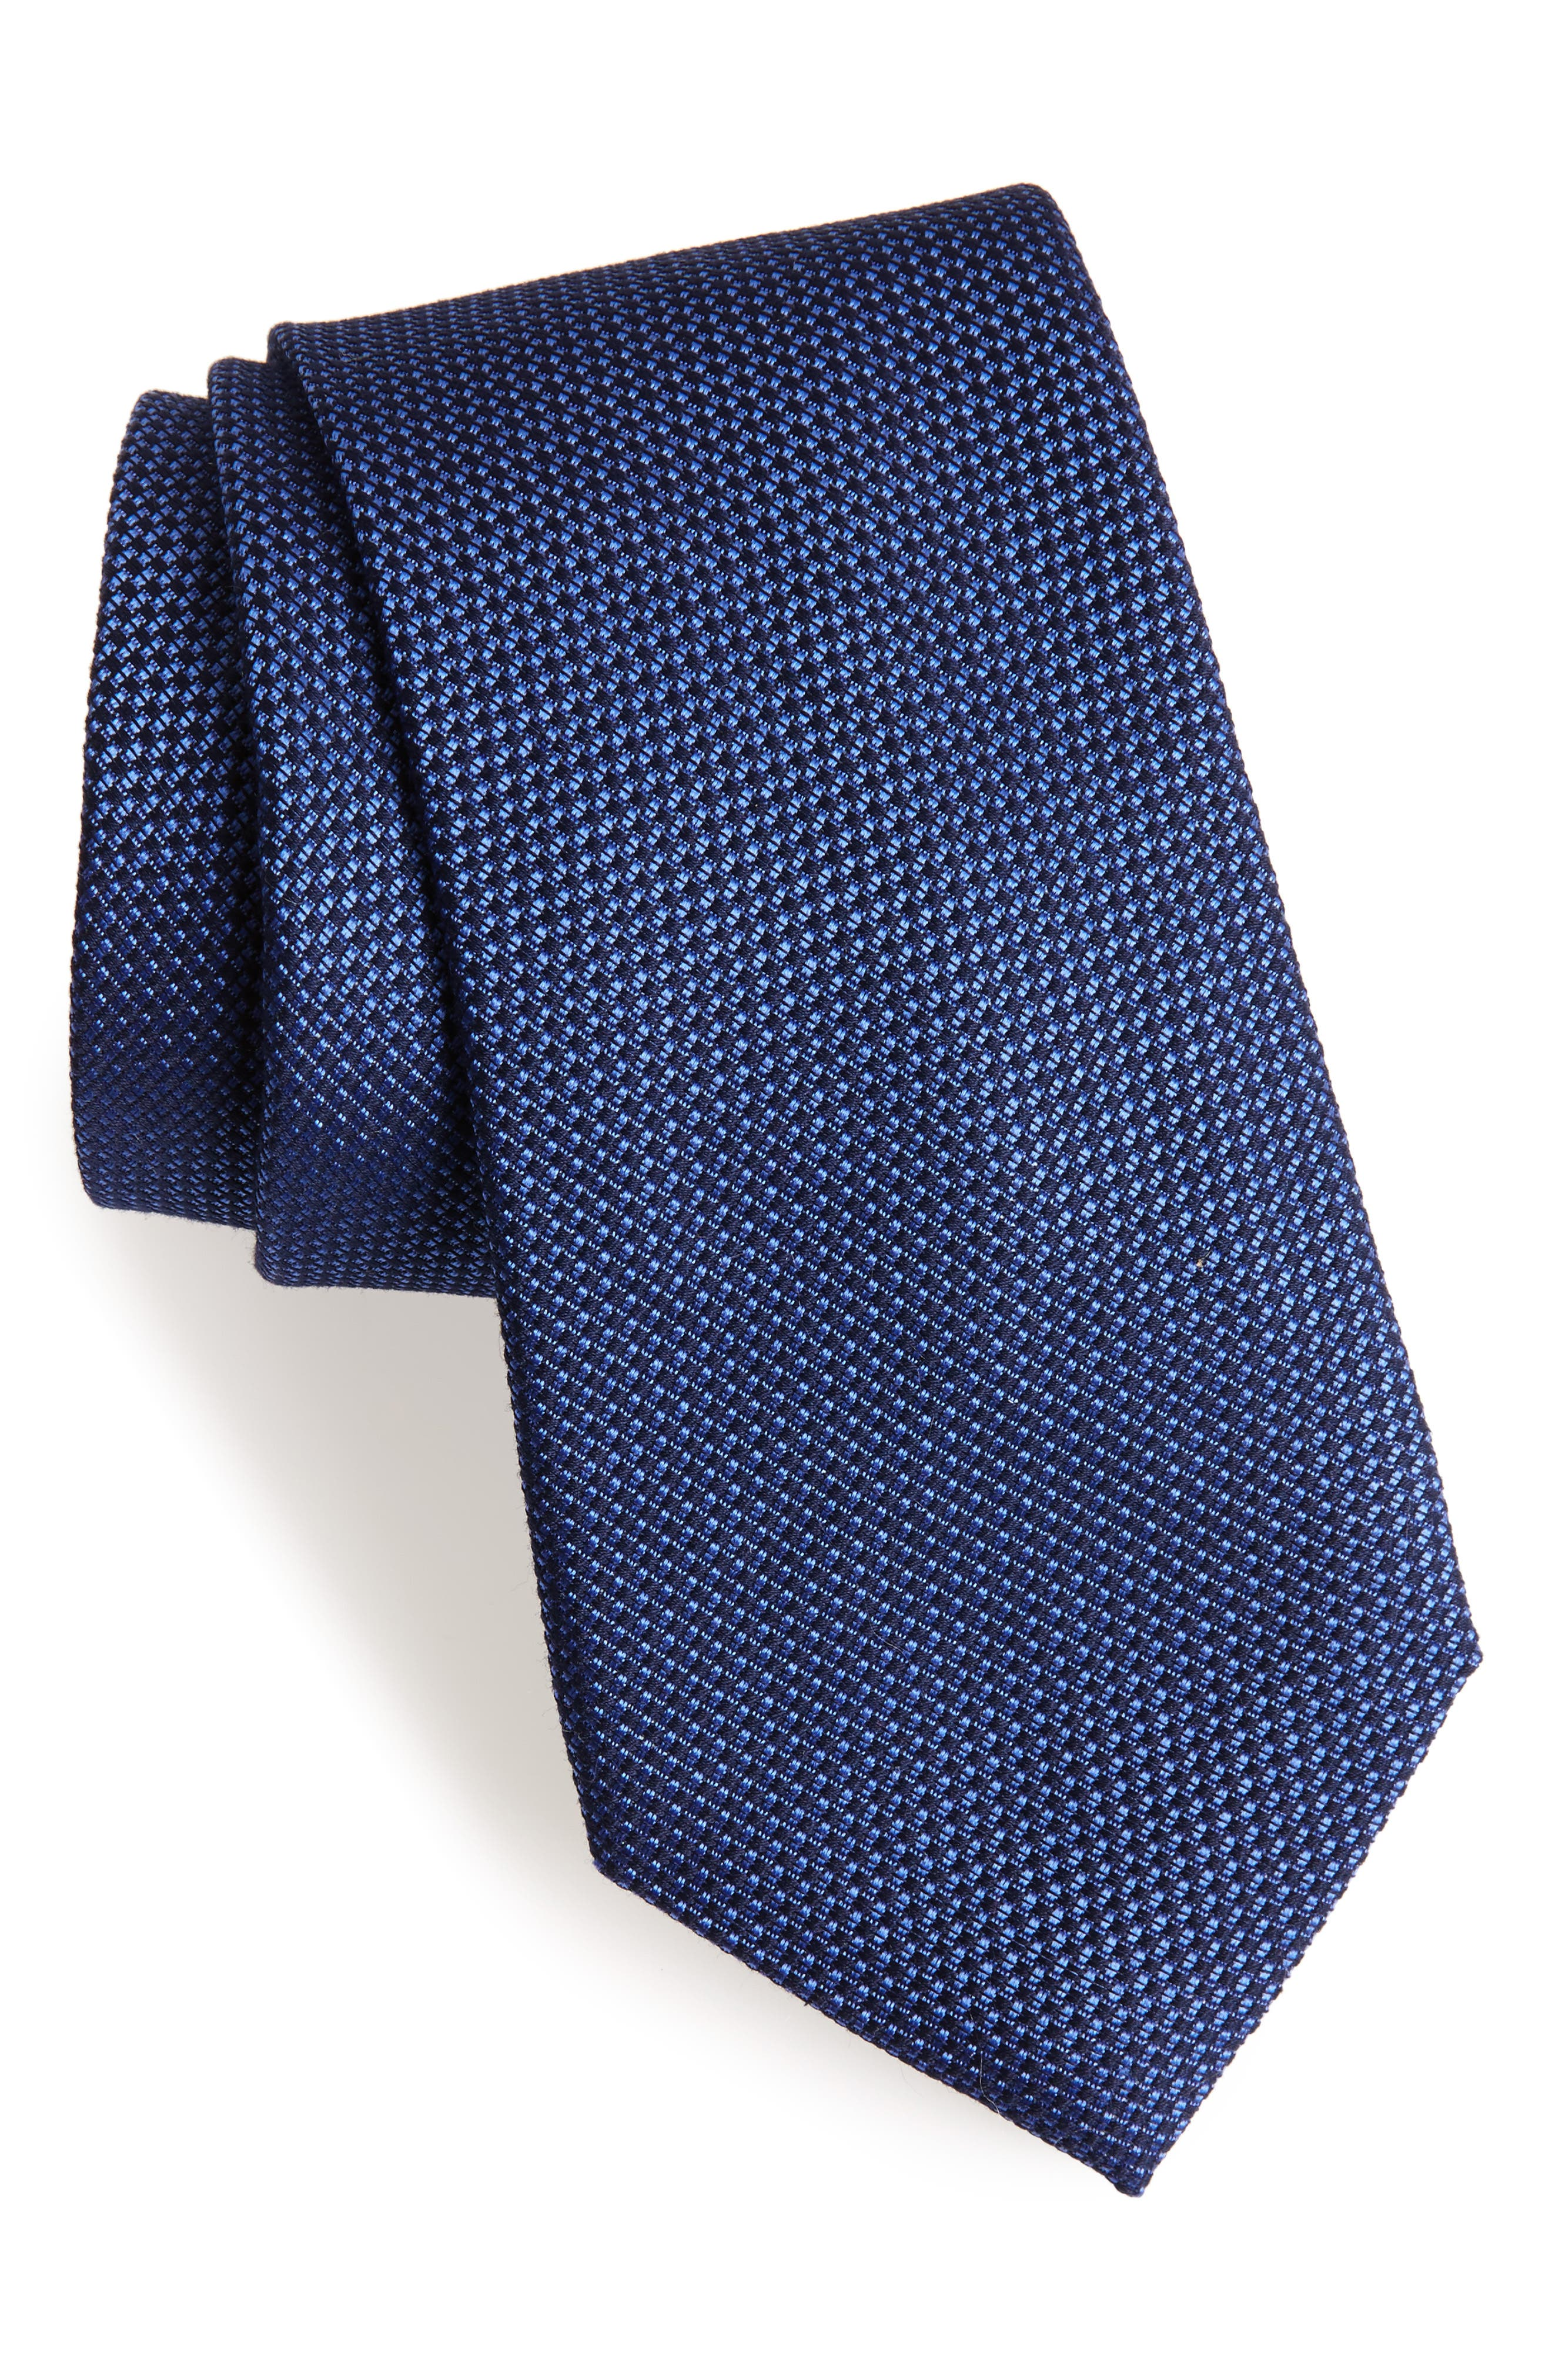 Seedstitch Solid Cotton & Silk Tie,                             Main thumbnail 1, color,                             Navy